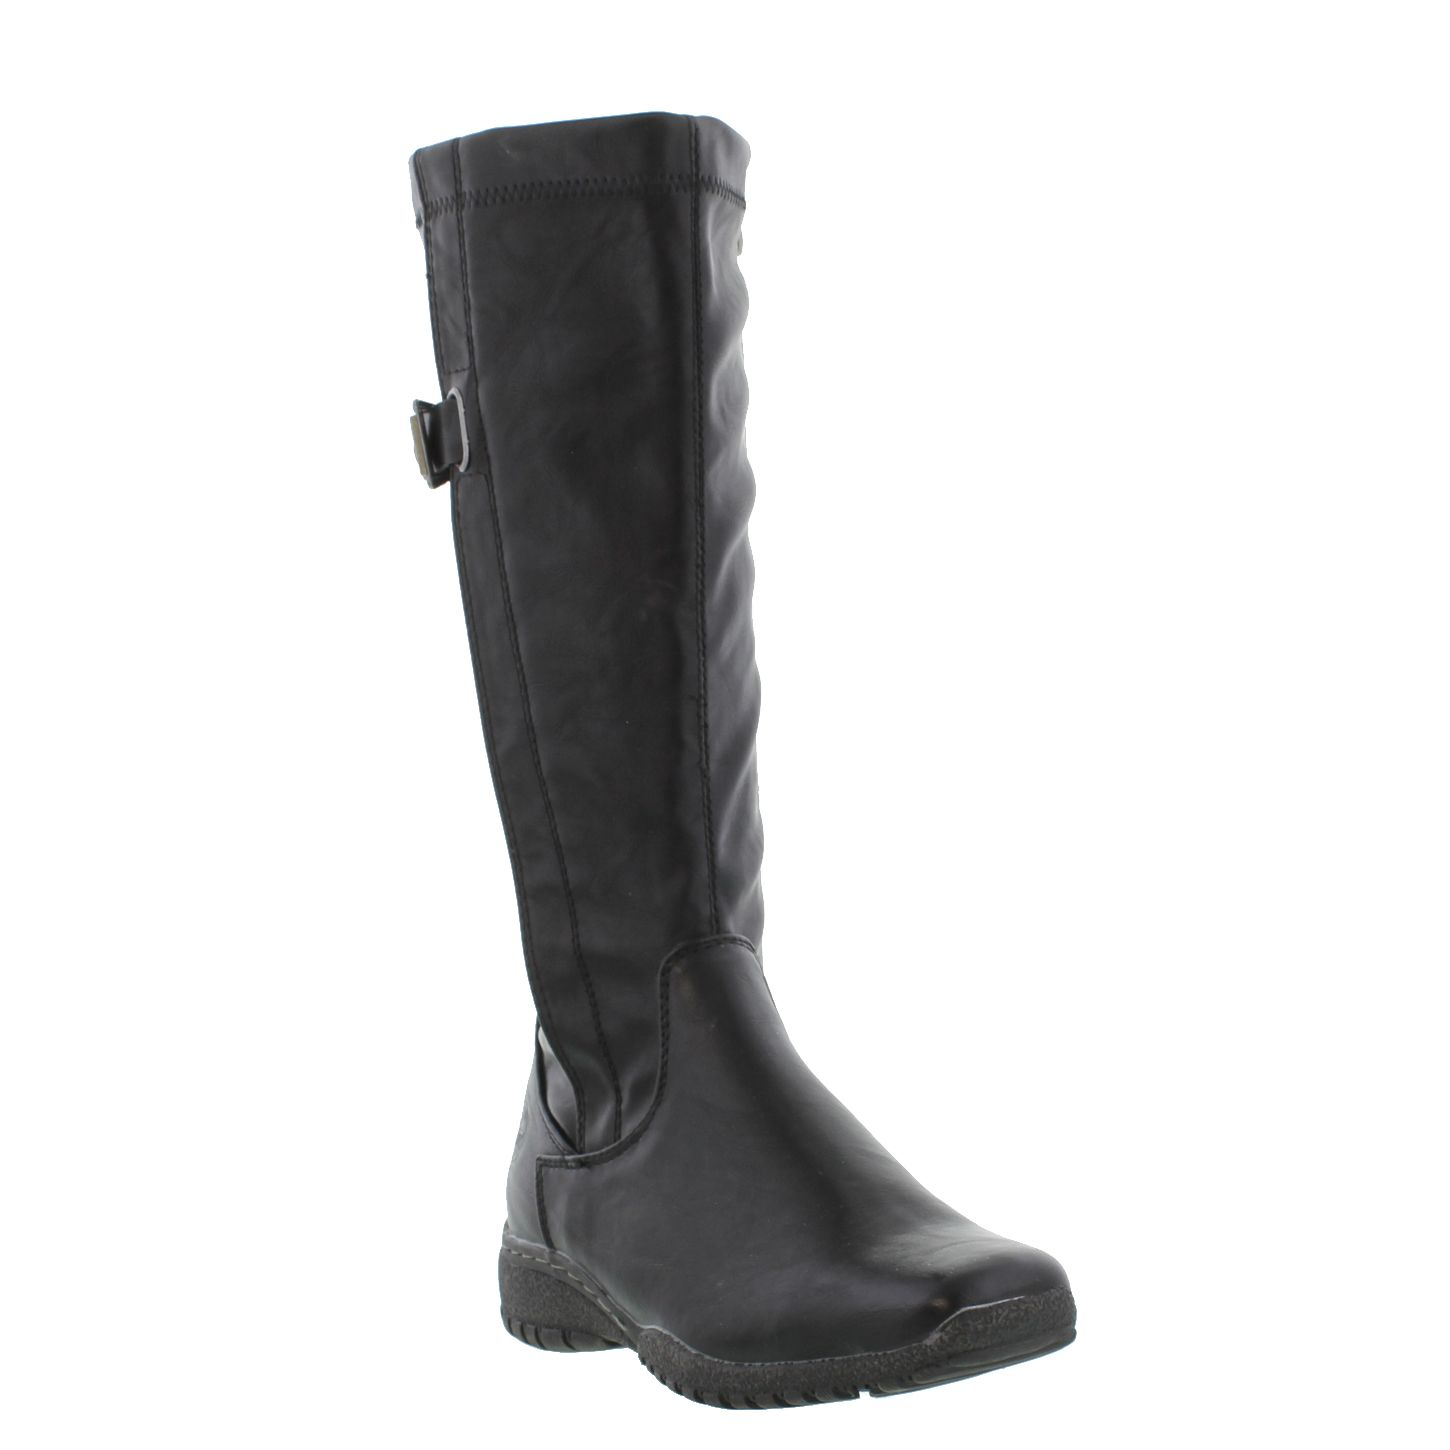 marco tozzi womens brown black tall synthetic soft leather zip boots size uk 3 8 ebay. Black Bedroom Furniture Sets. Home Design Ideas